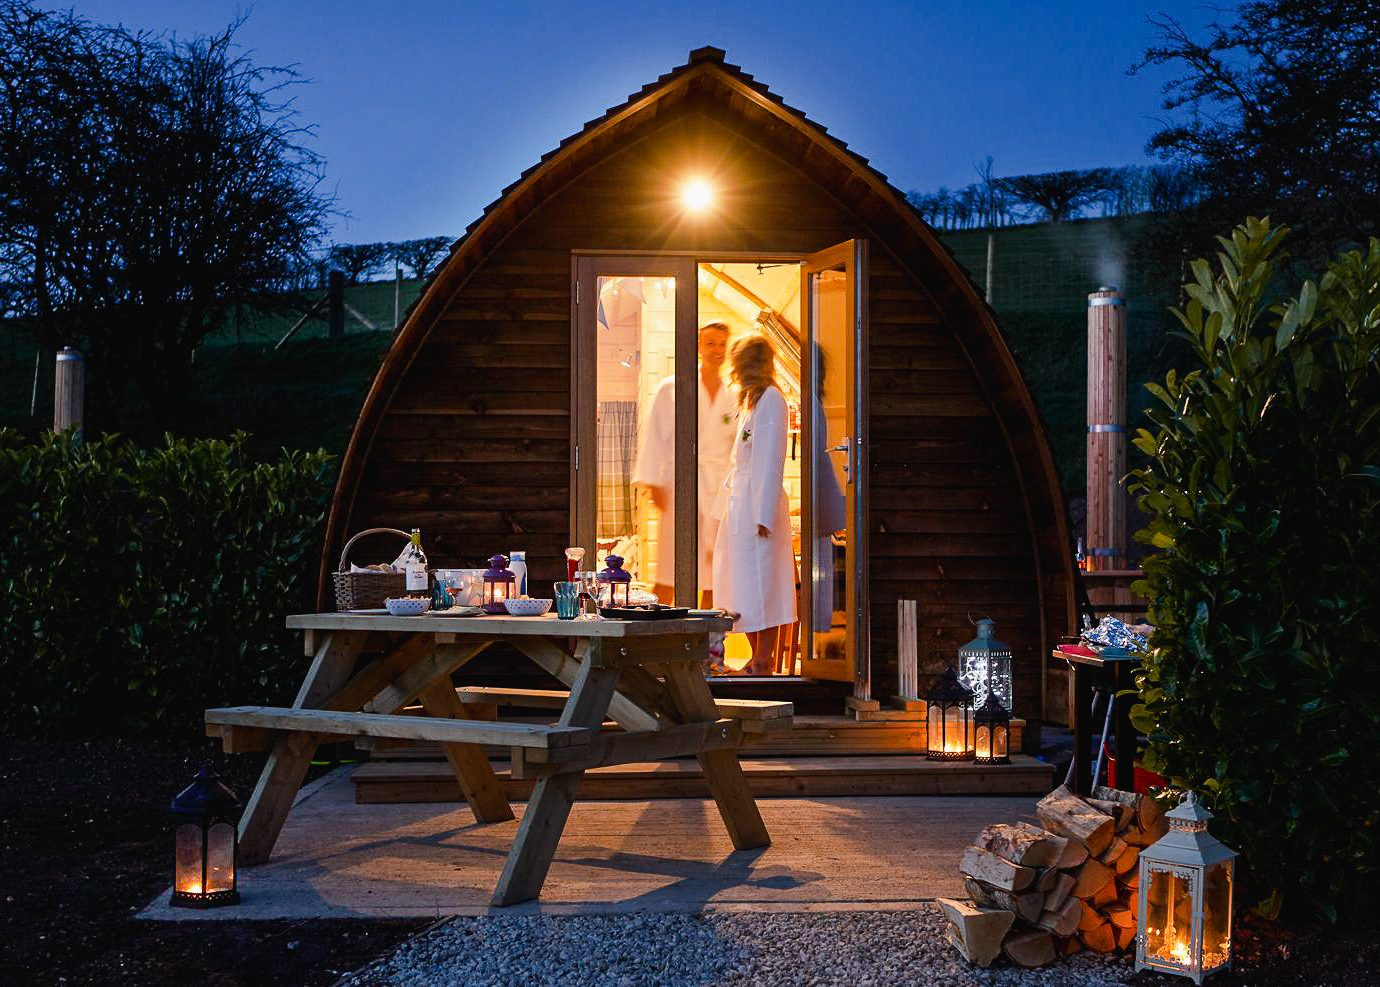 Glamping Outdoors + Adventure Trip Ideas tree outdoor home lighting house cottage evening log cabin shed landscape lighting real estate night outdoor structure hut